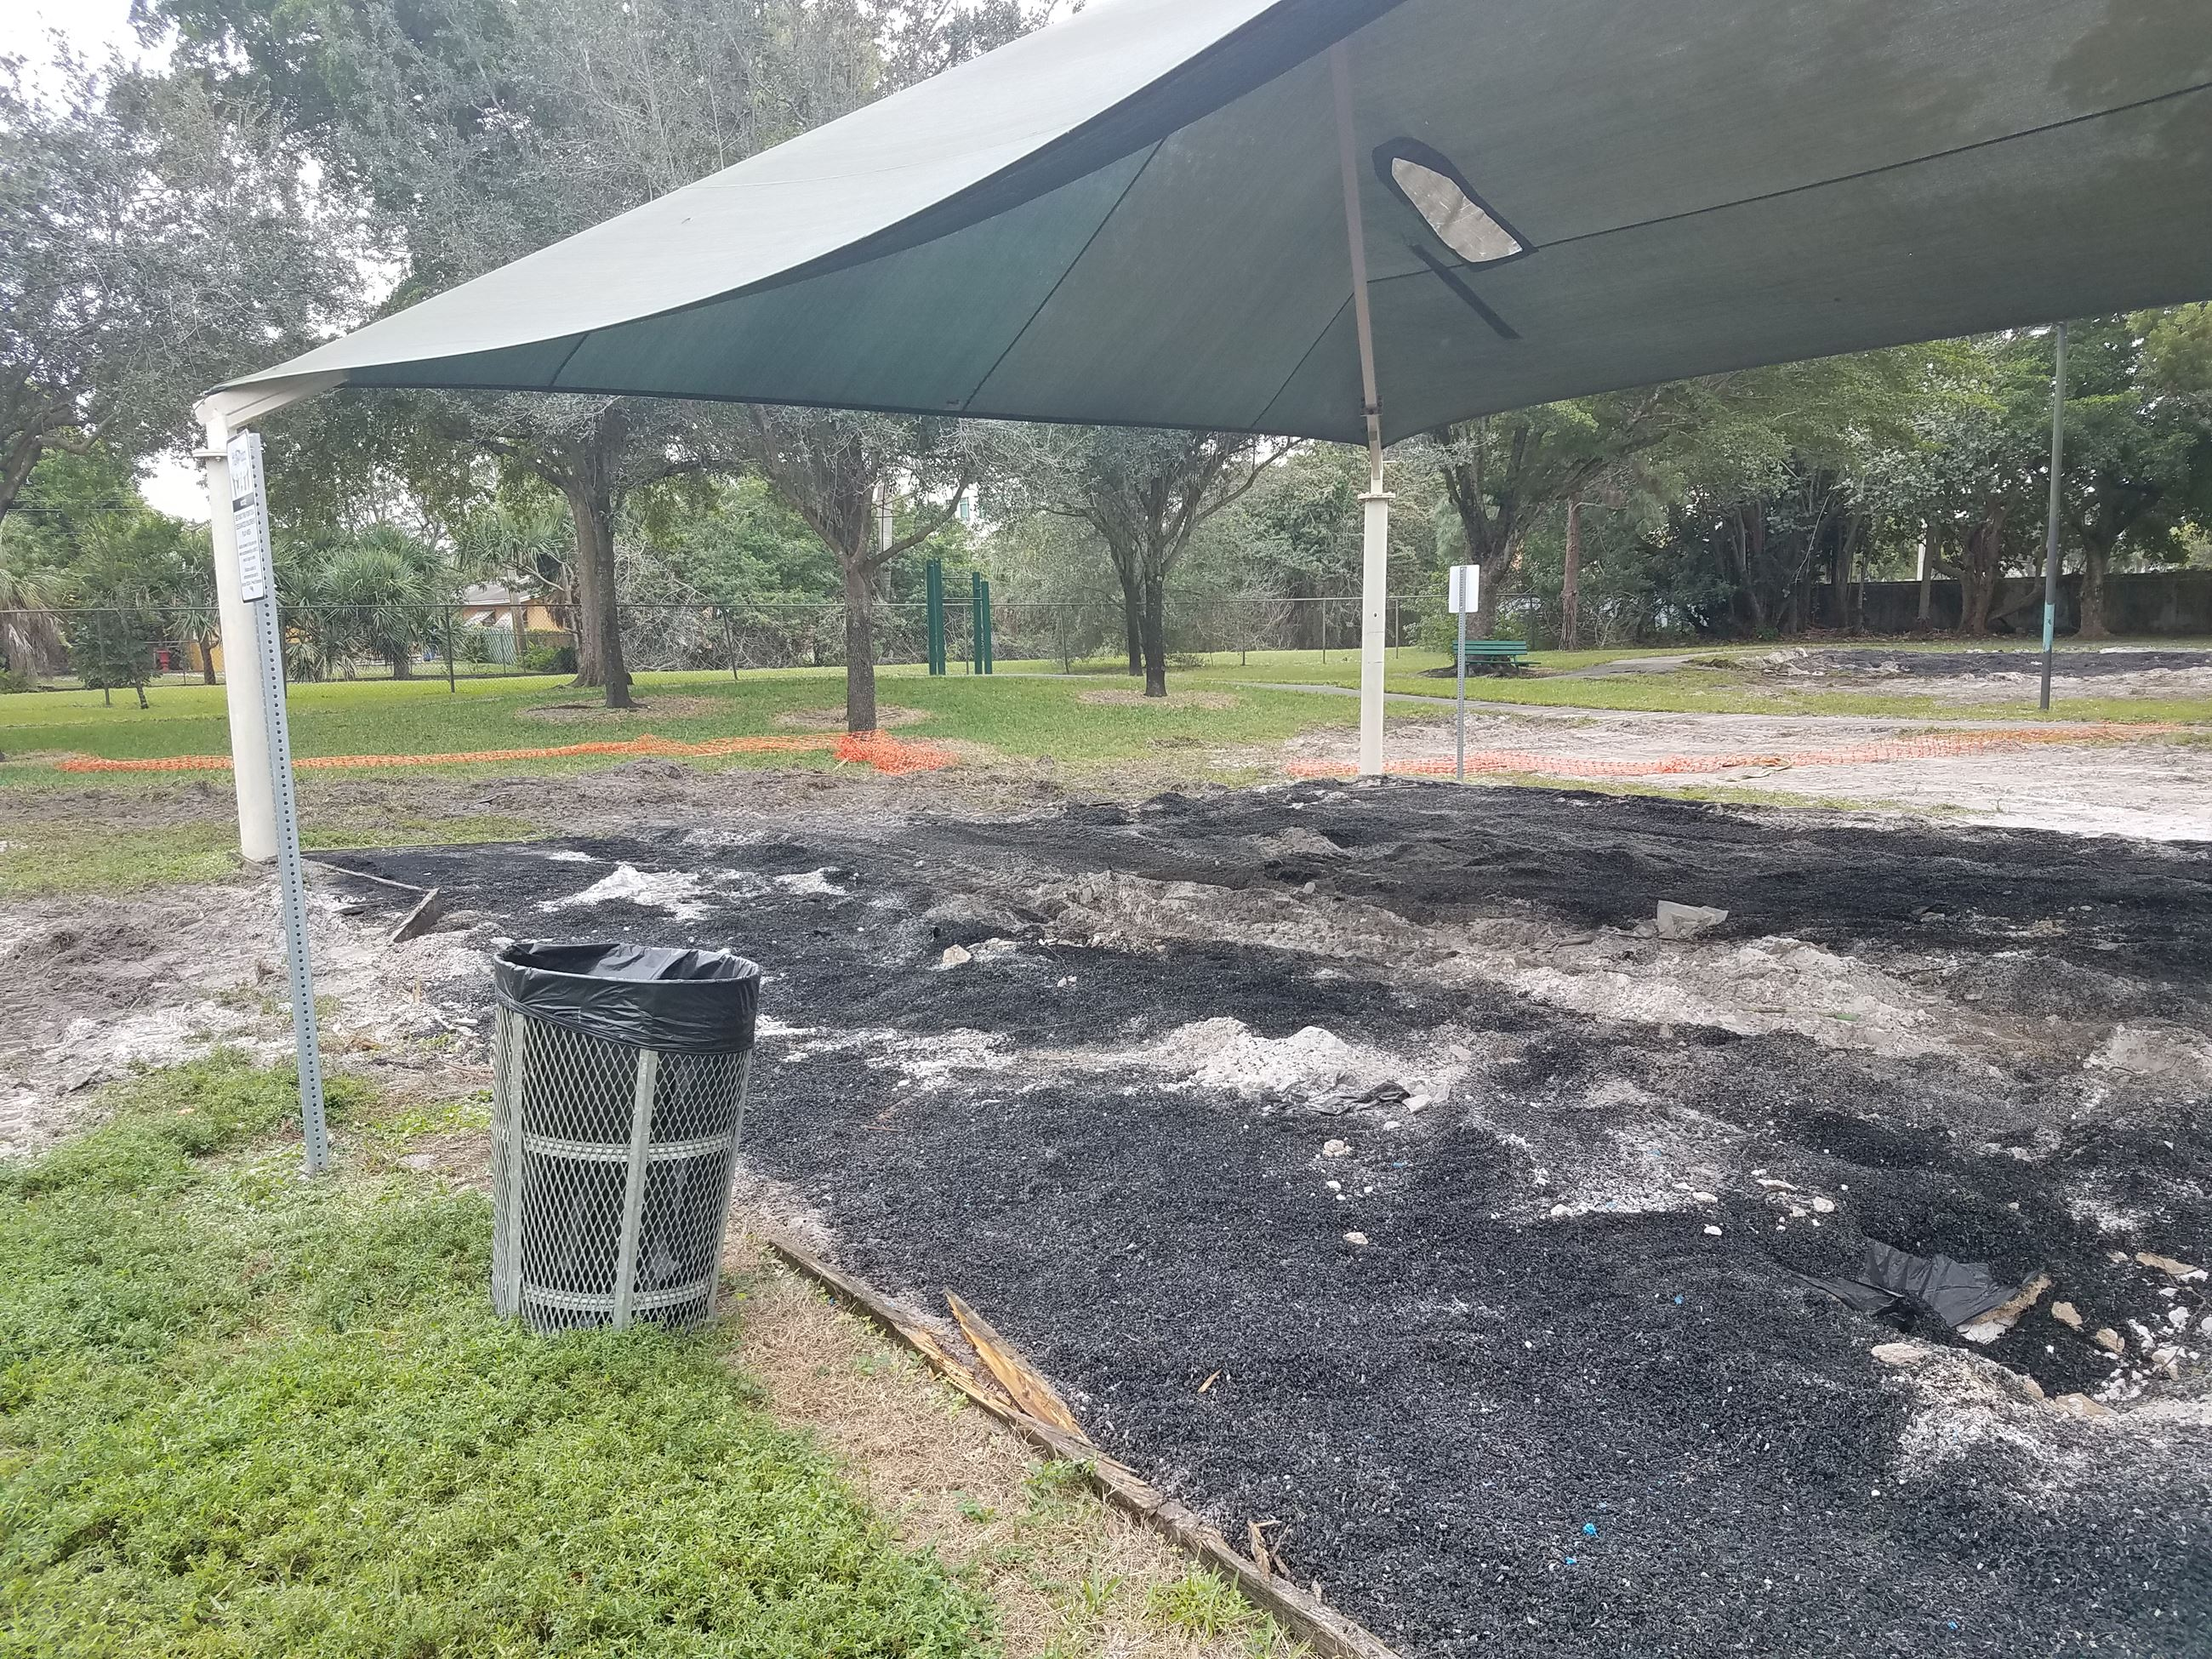 playground removed from under canopy